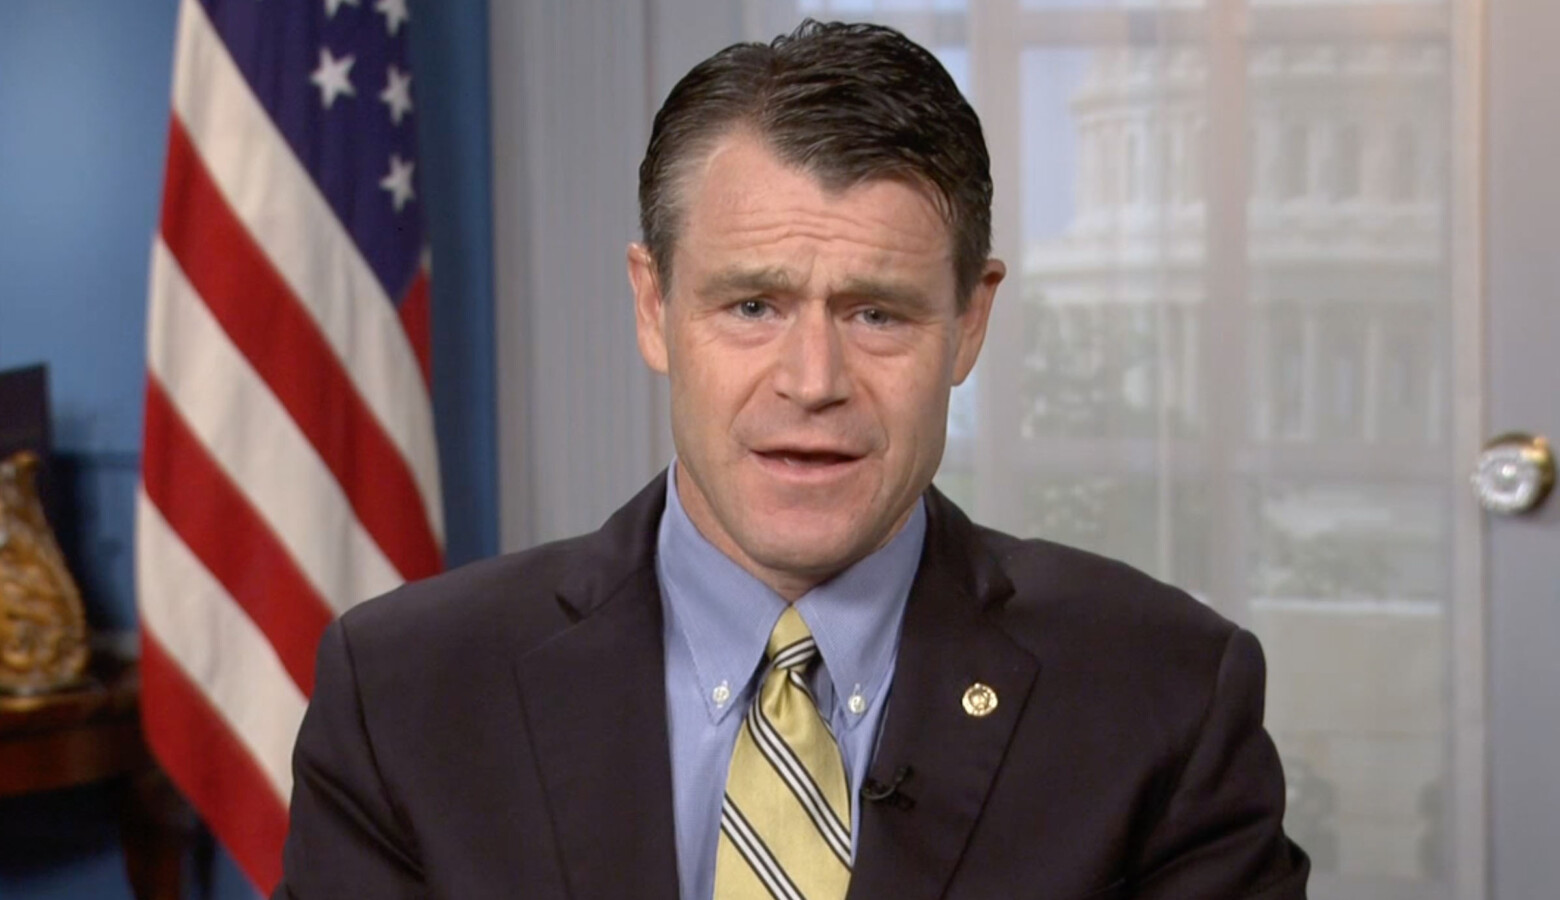 """Sen. Todd Young (R-Ind.) said he wants the federal government's next round of COVID-19 relief to be """"targeted"""" at those who need help most. (Screenshot)"""